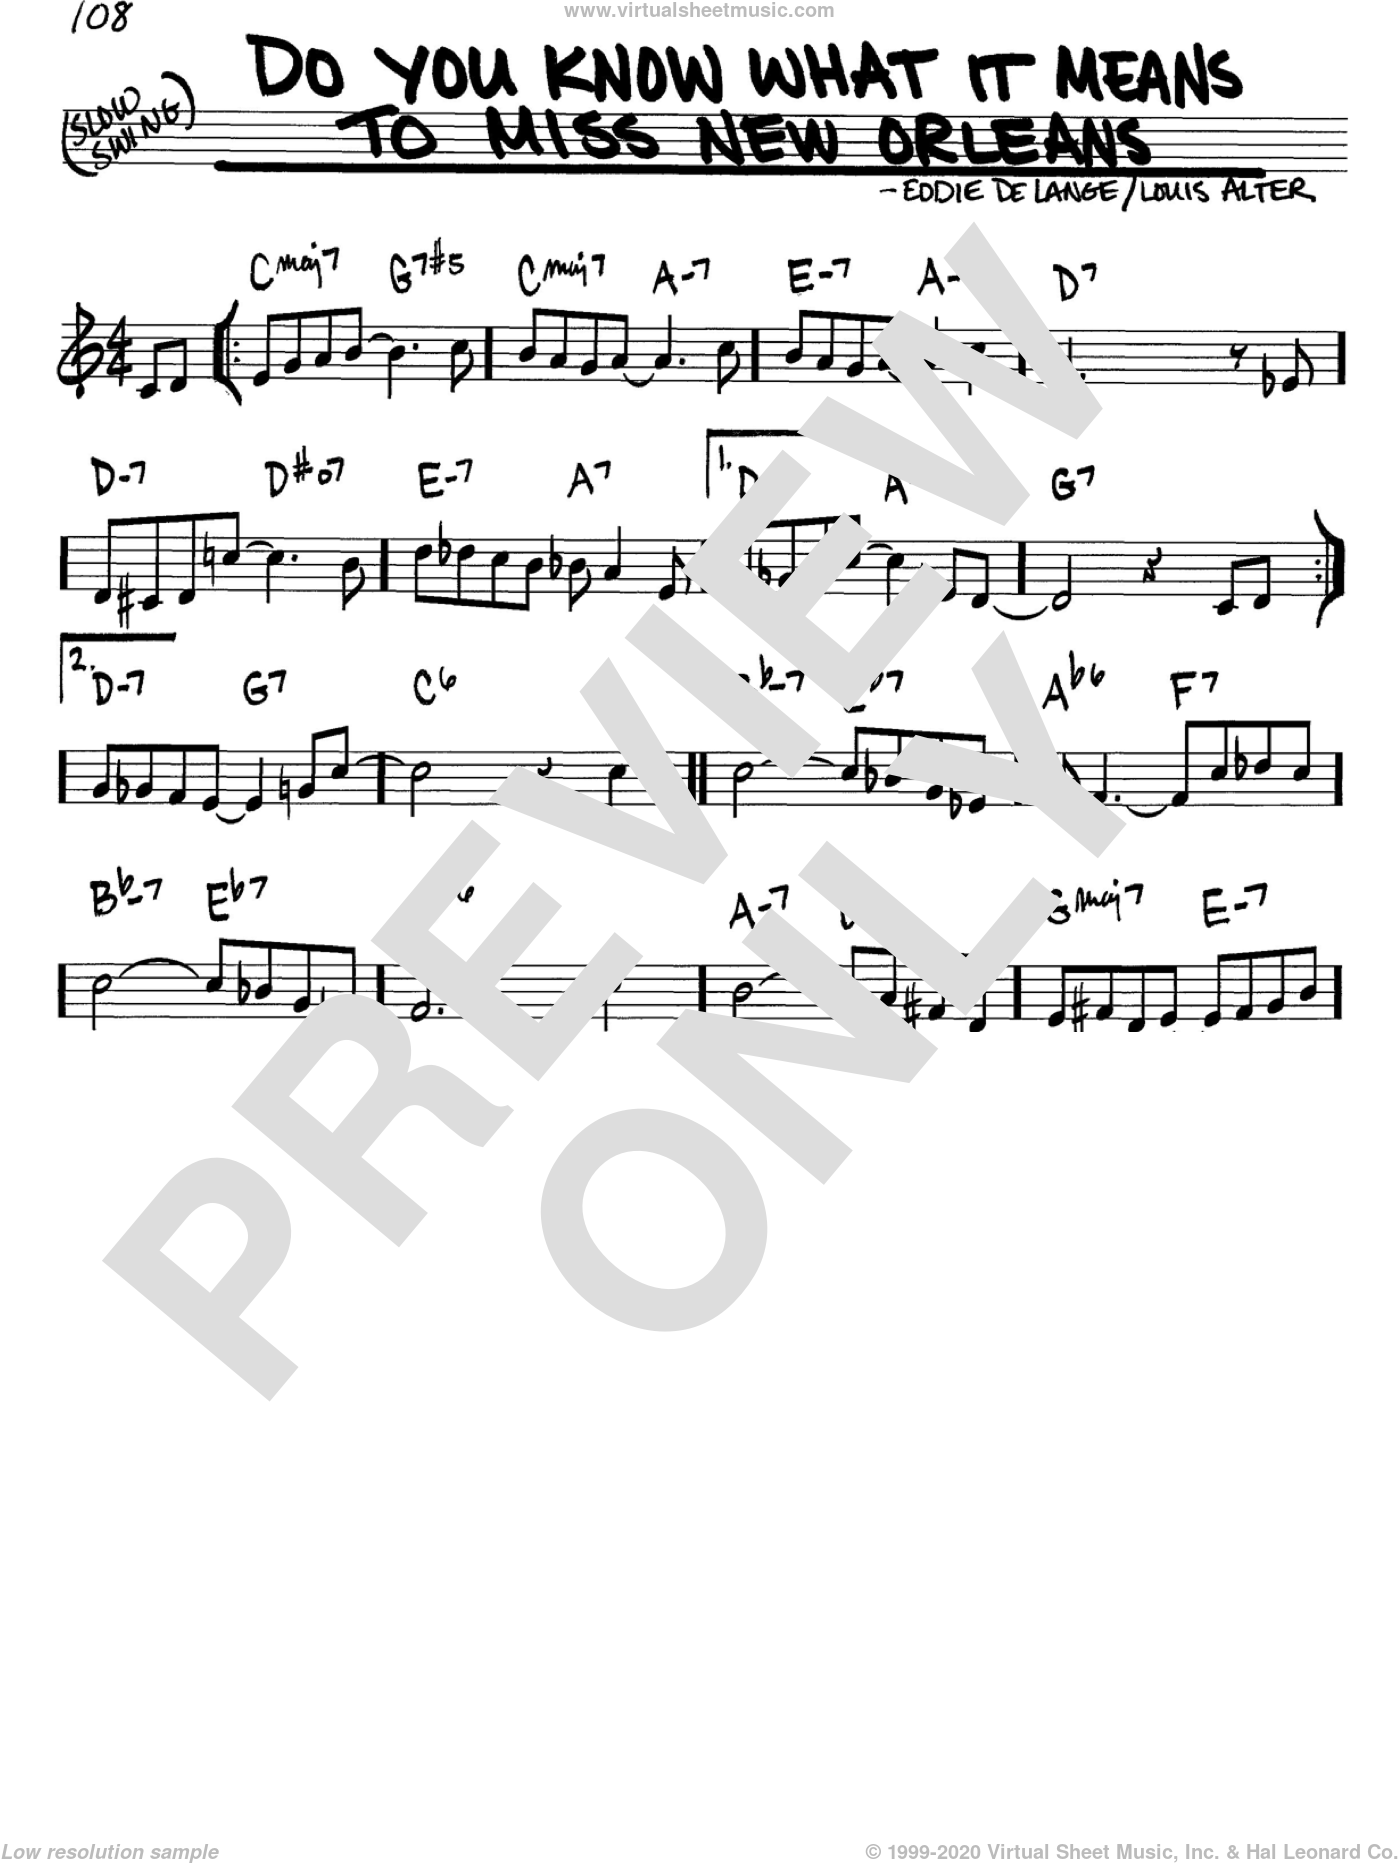 Do You Know What It Means To Miss New Orleans sheet music for voice and other instruments (in C) by Louis Armstrong, Eddie DeLange and Louis Alter, intermediate skill level